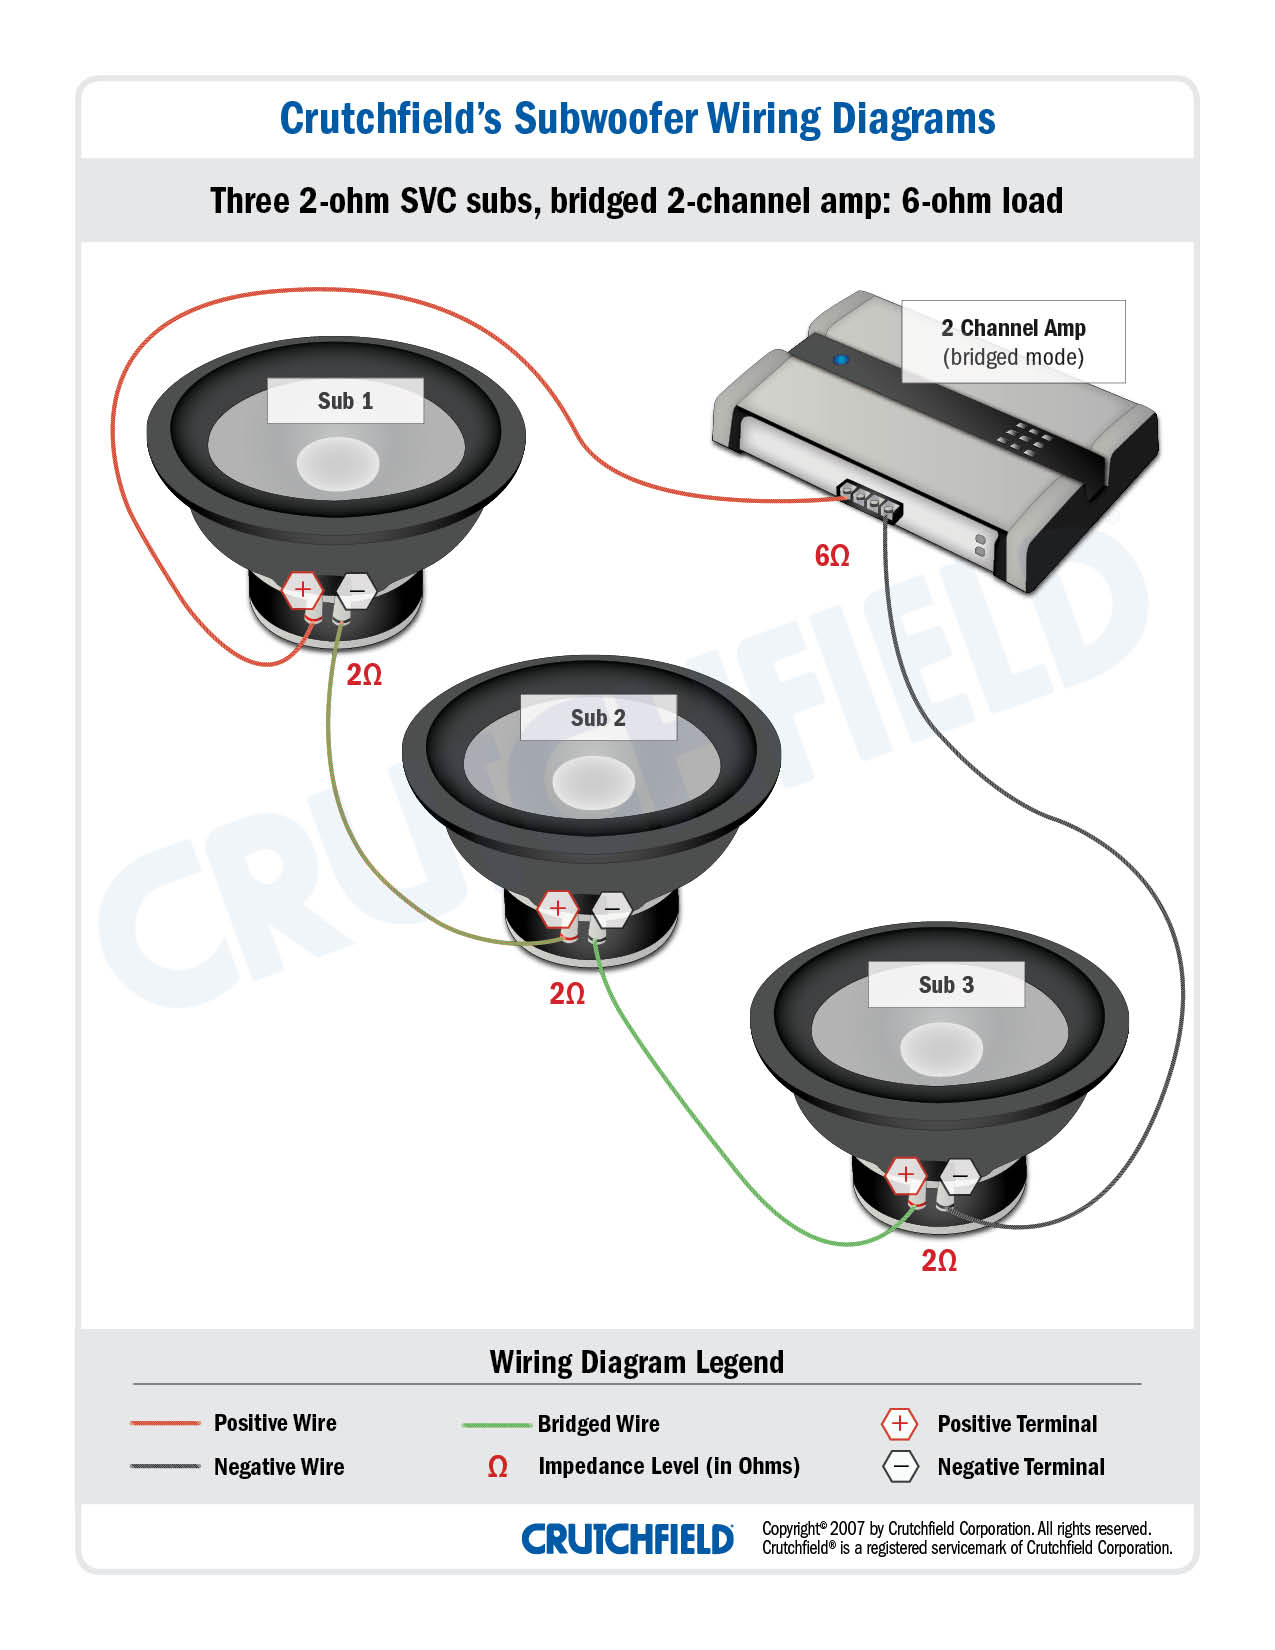 wires needed to hook up subwoofers